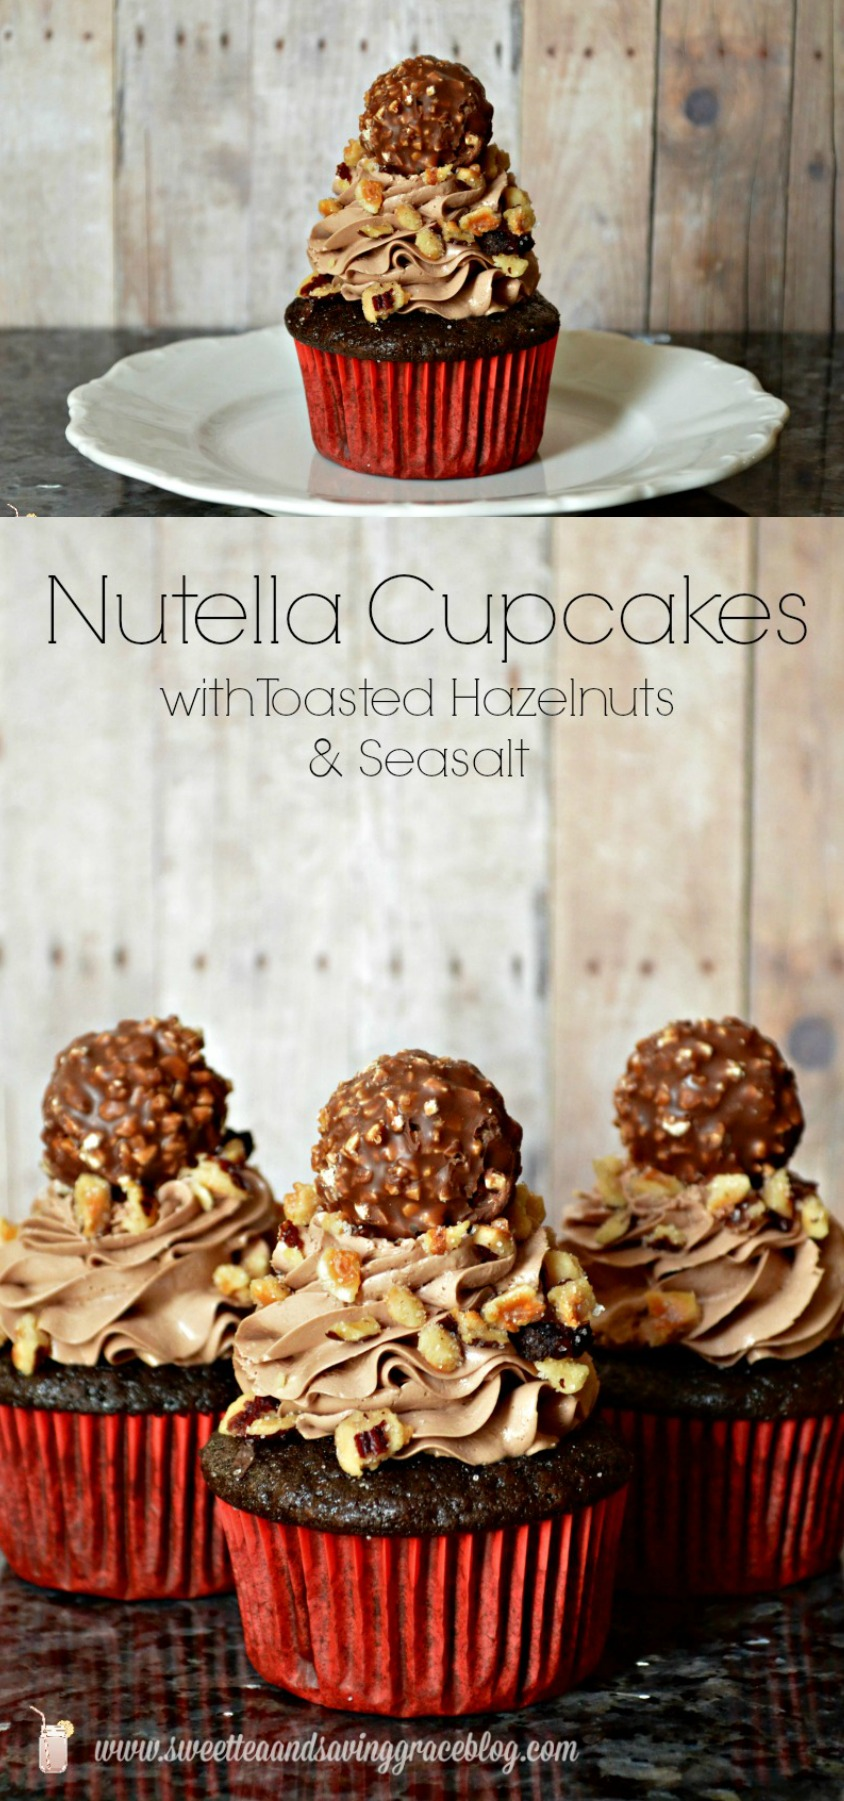 Nutella Cupcakes with toasted hazelnuts and sea salt and so scrumptious! They're perfect for your sweetheart, or to share at a party, but they're so good you'll want to keep them to yourself!